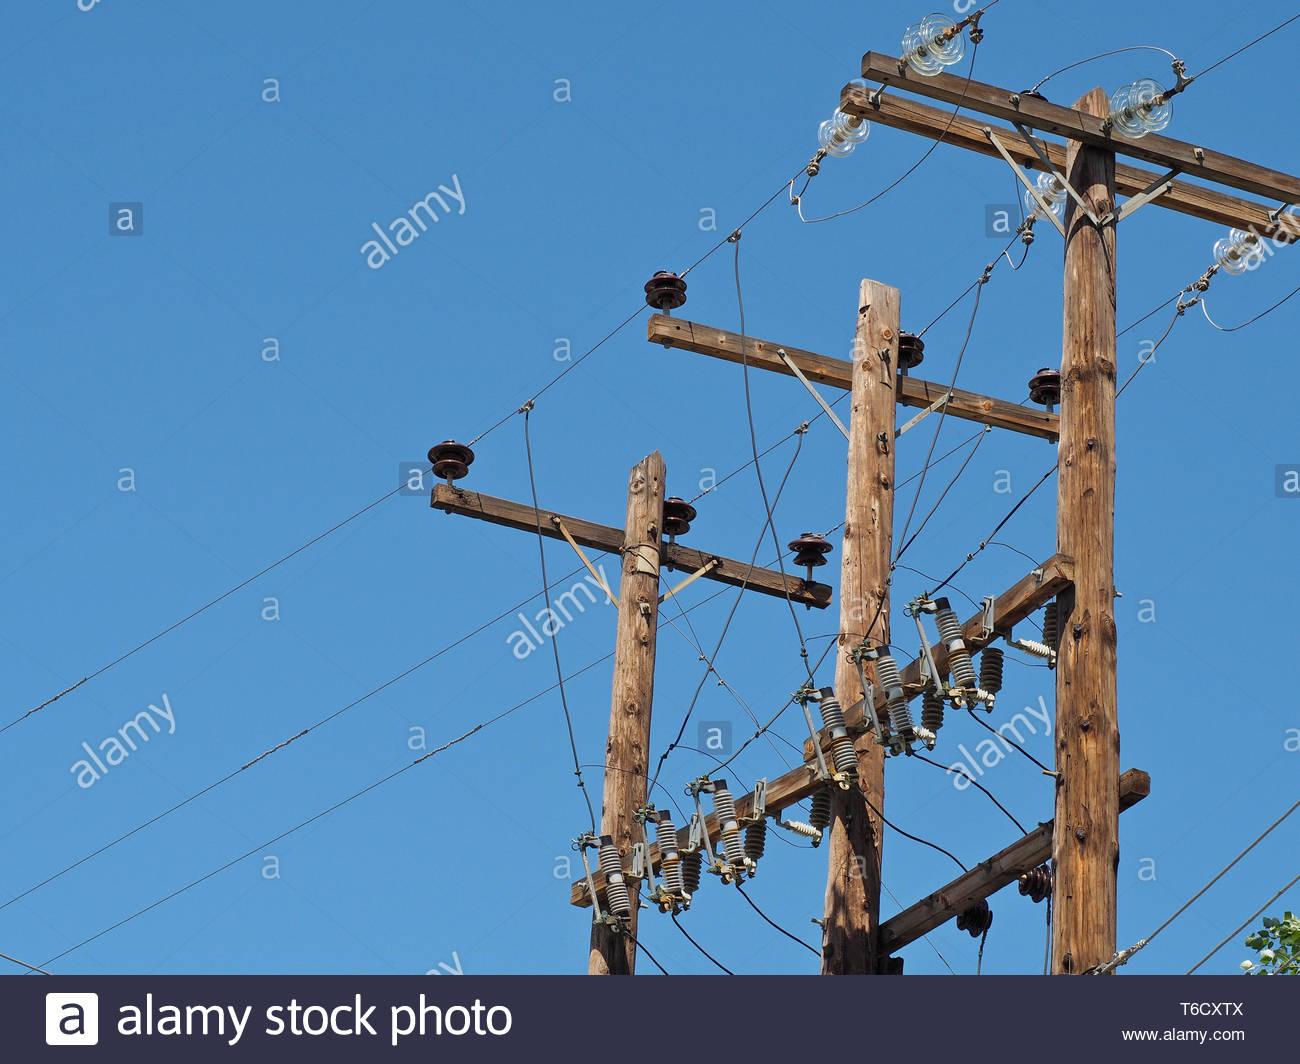 A grids view ,electric current pylon and cables - Stock Image